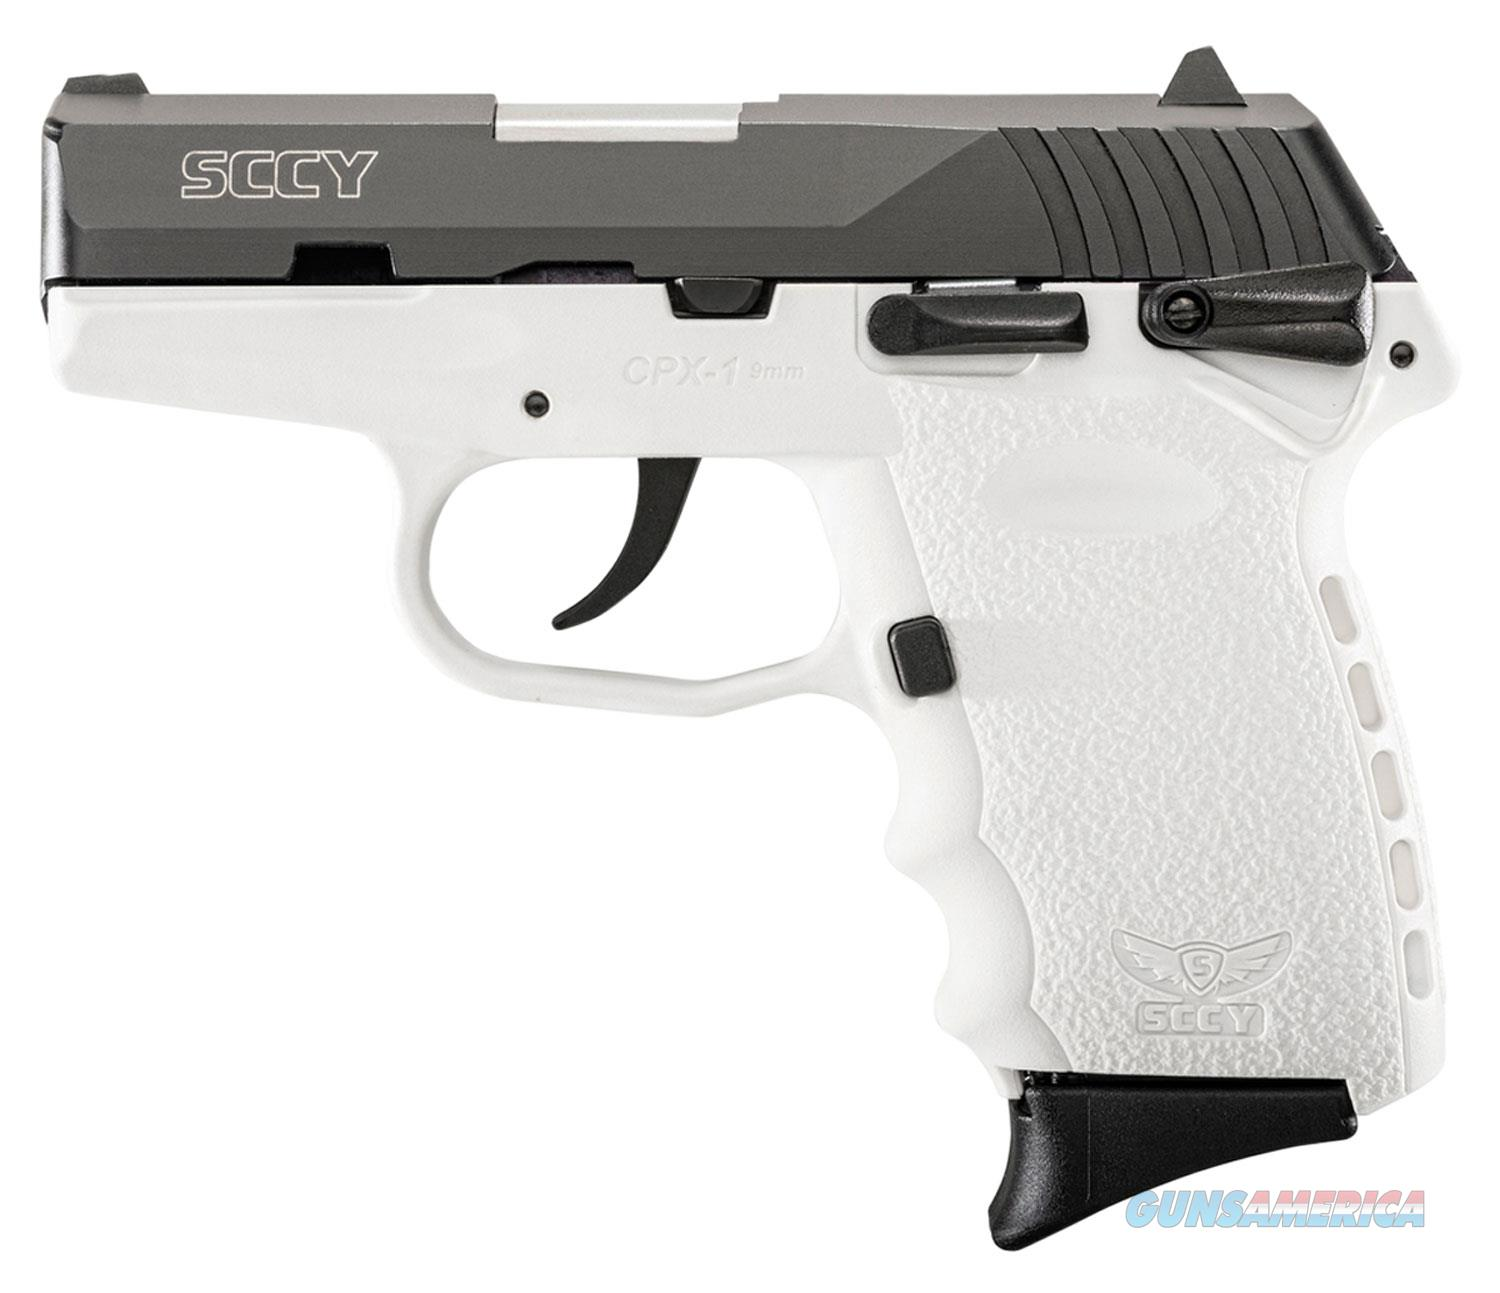 "Sccy Industries Cpx1cbwt Cpx-1 Carbon  9Mm Luger Double 3.1"" 10+1 White Polymer Grip/Frame Grip Black Nitride Stainless Steel Slide CPX1-CBWT  Guns > Pistols > S Misc Pistols"